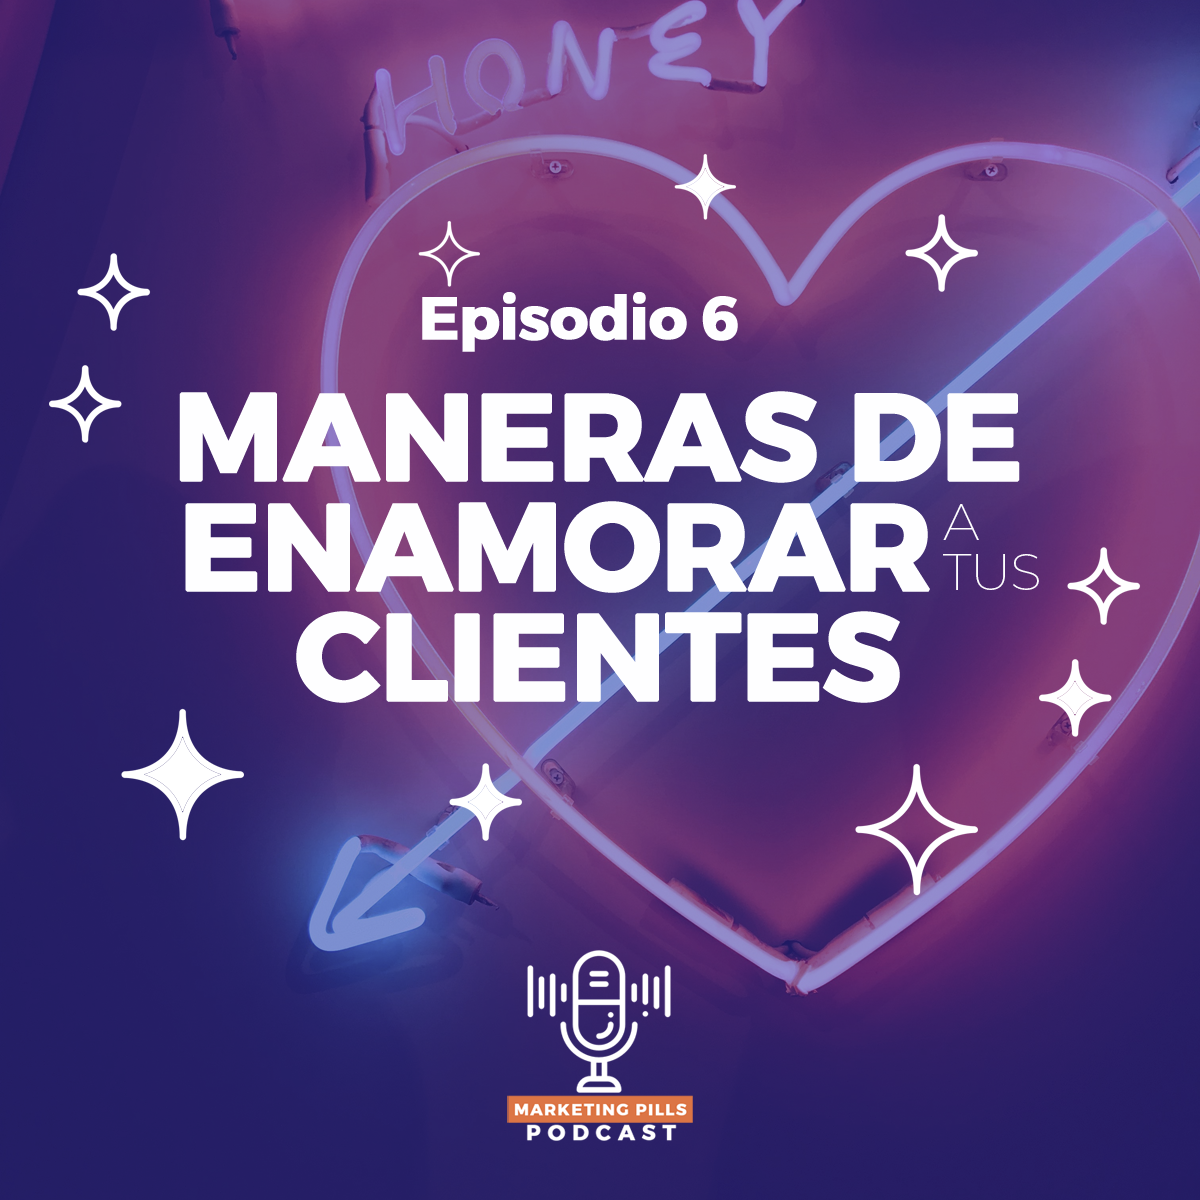 https://marianasalas.com/wp-content/uploads/2019/02/EPISODIO-6.png